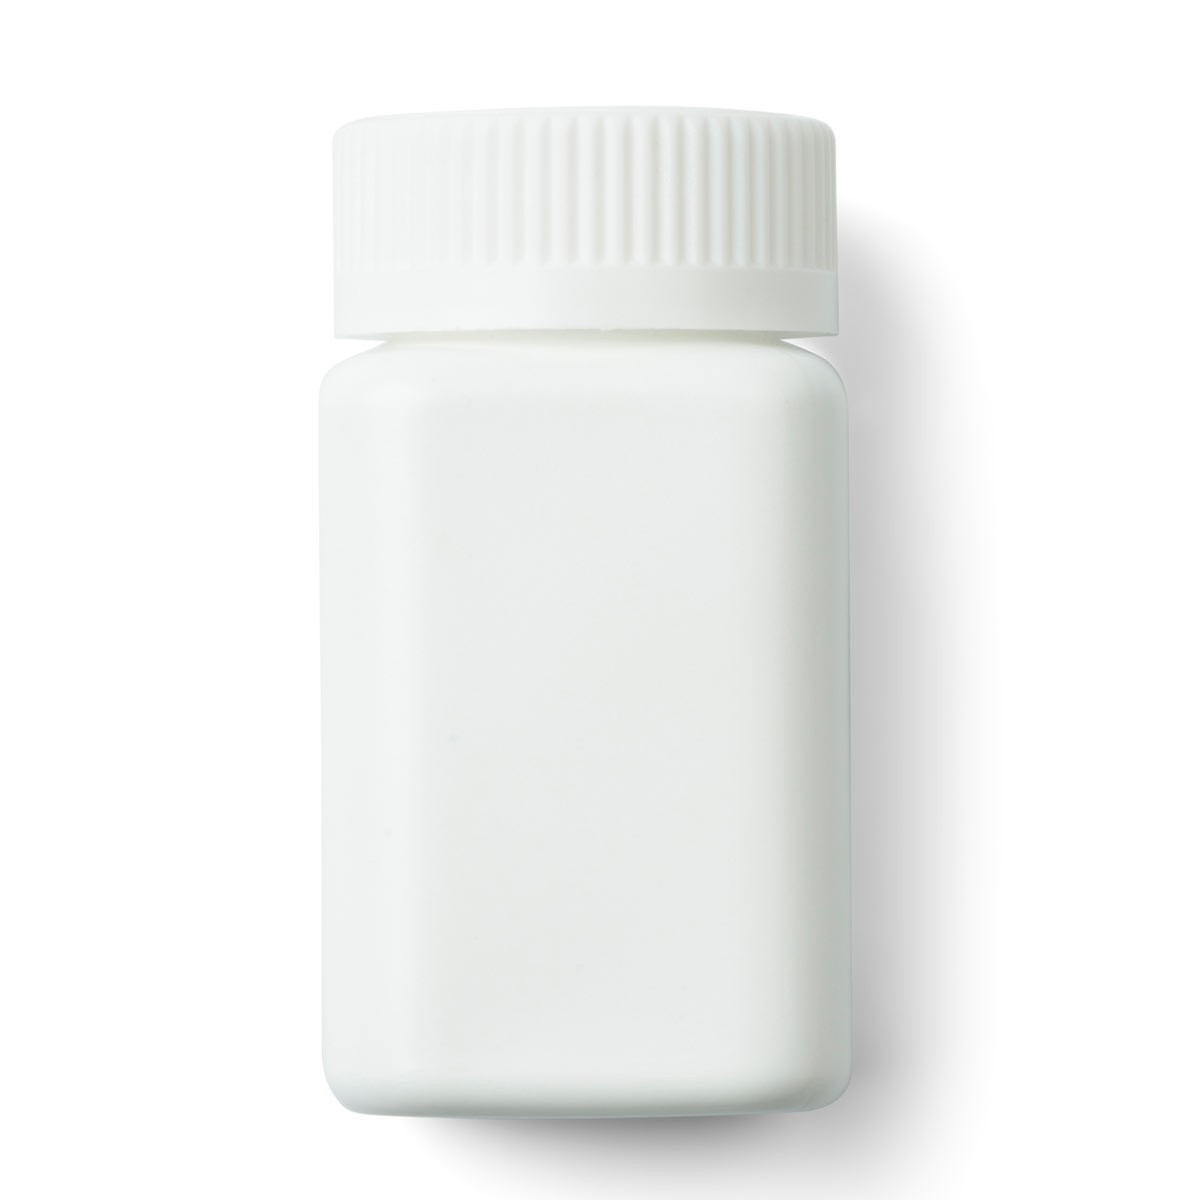 Sensemedic Pill Bottle